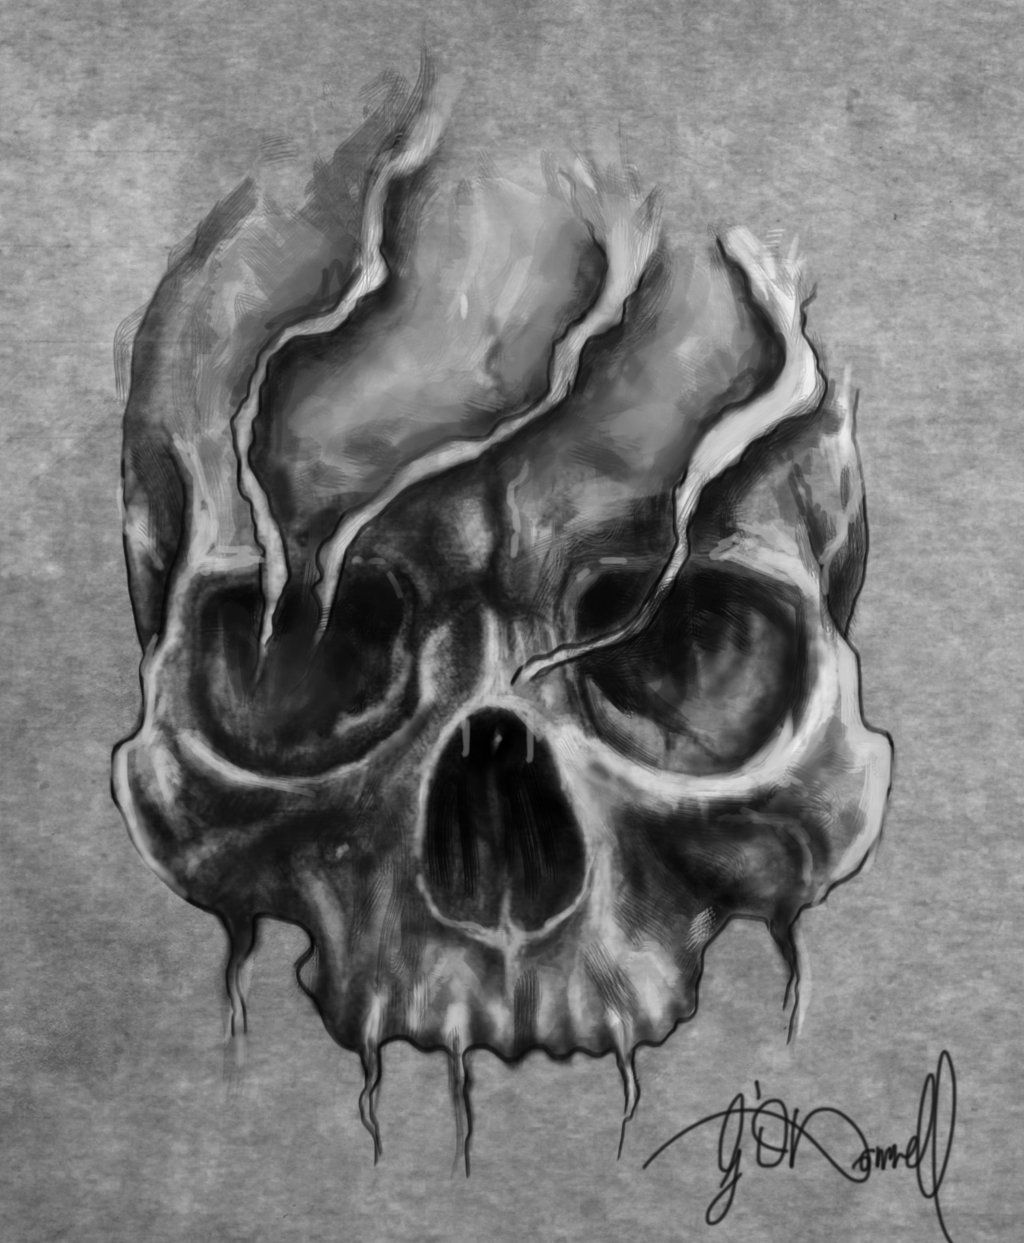 Skull Design For A Tattoo By XeNzO.deviantart.com On